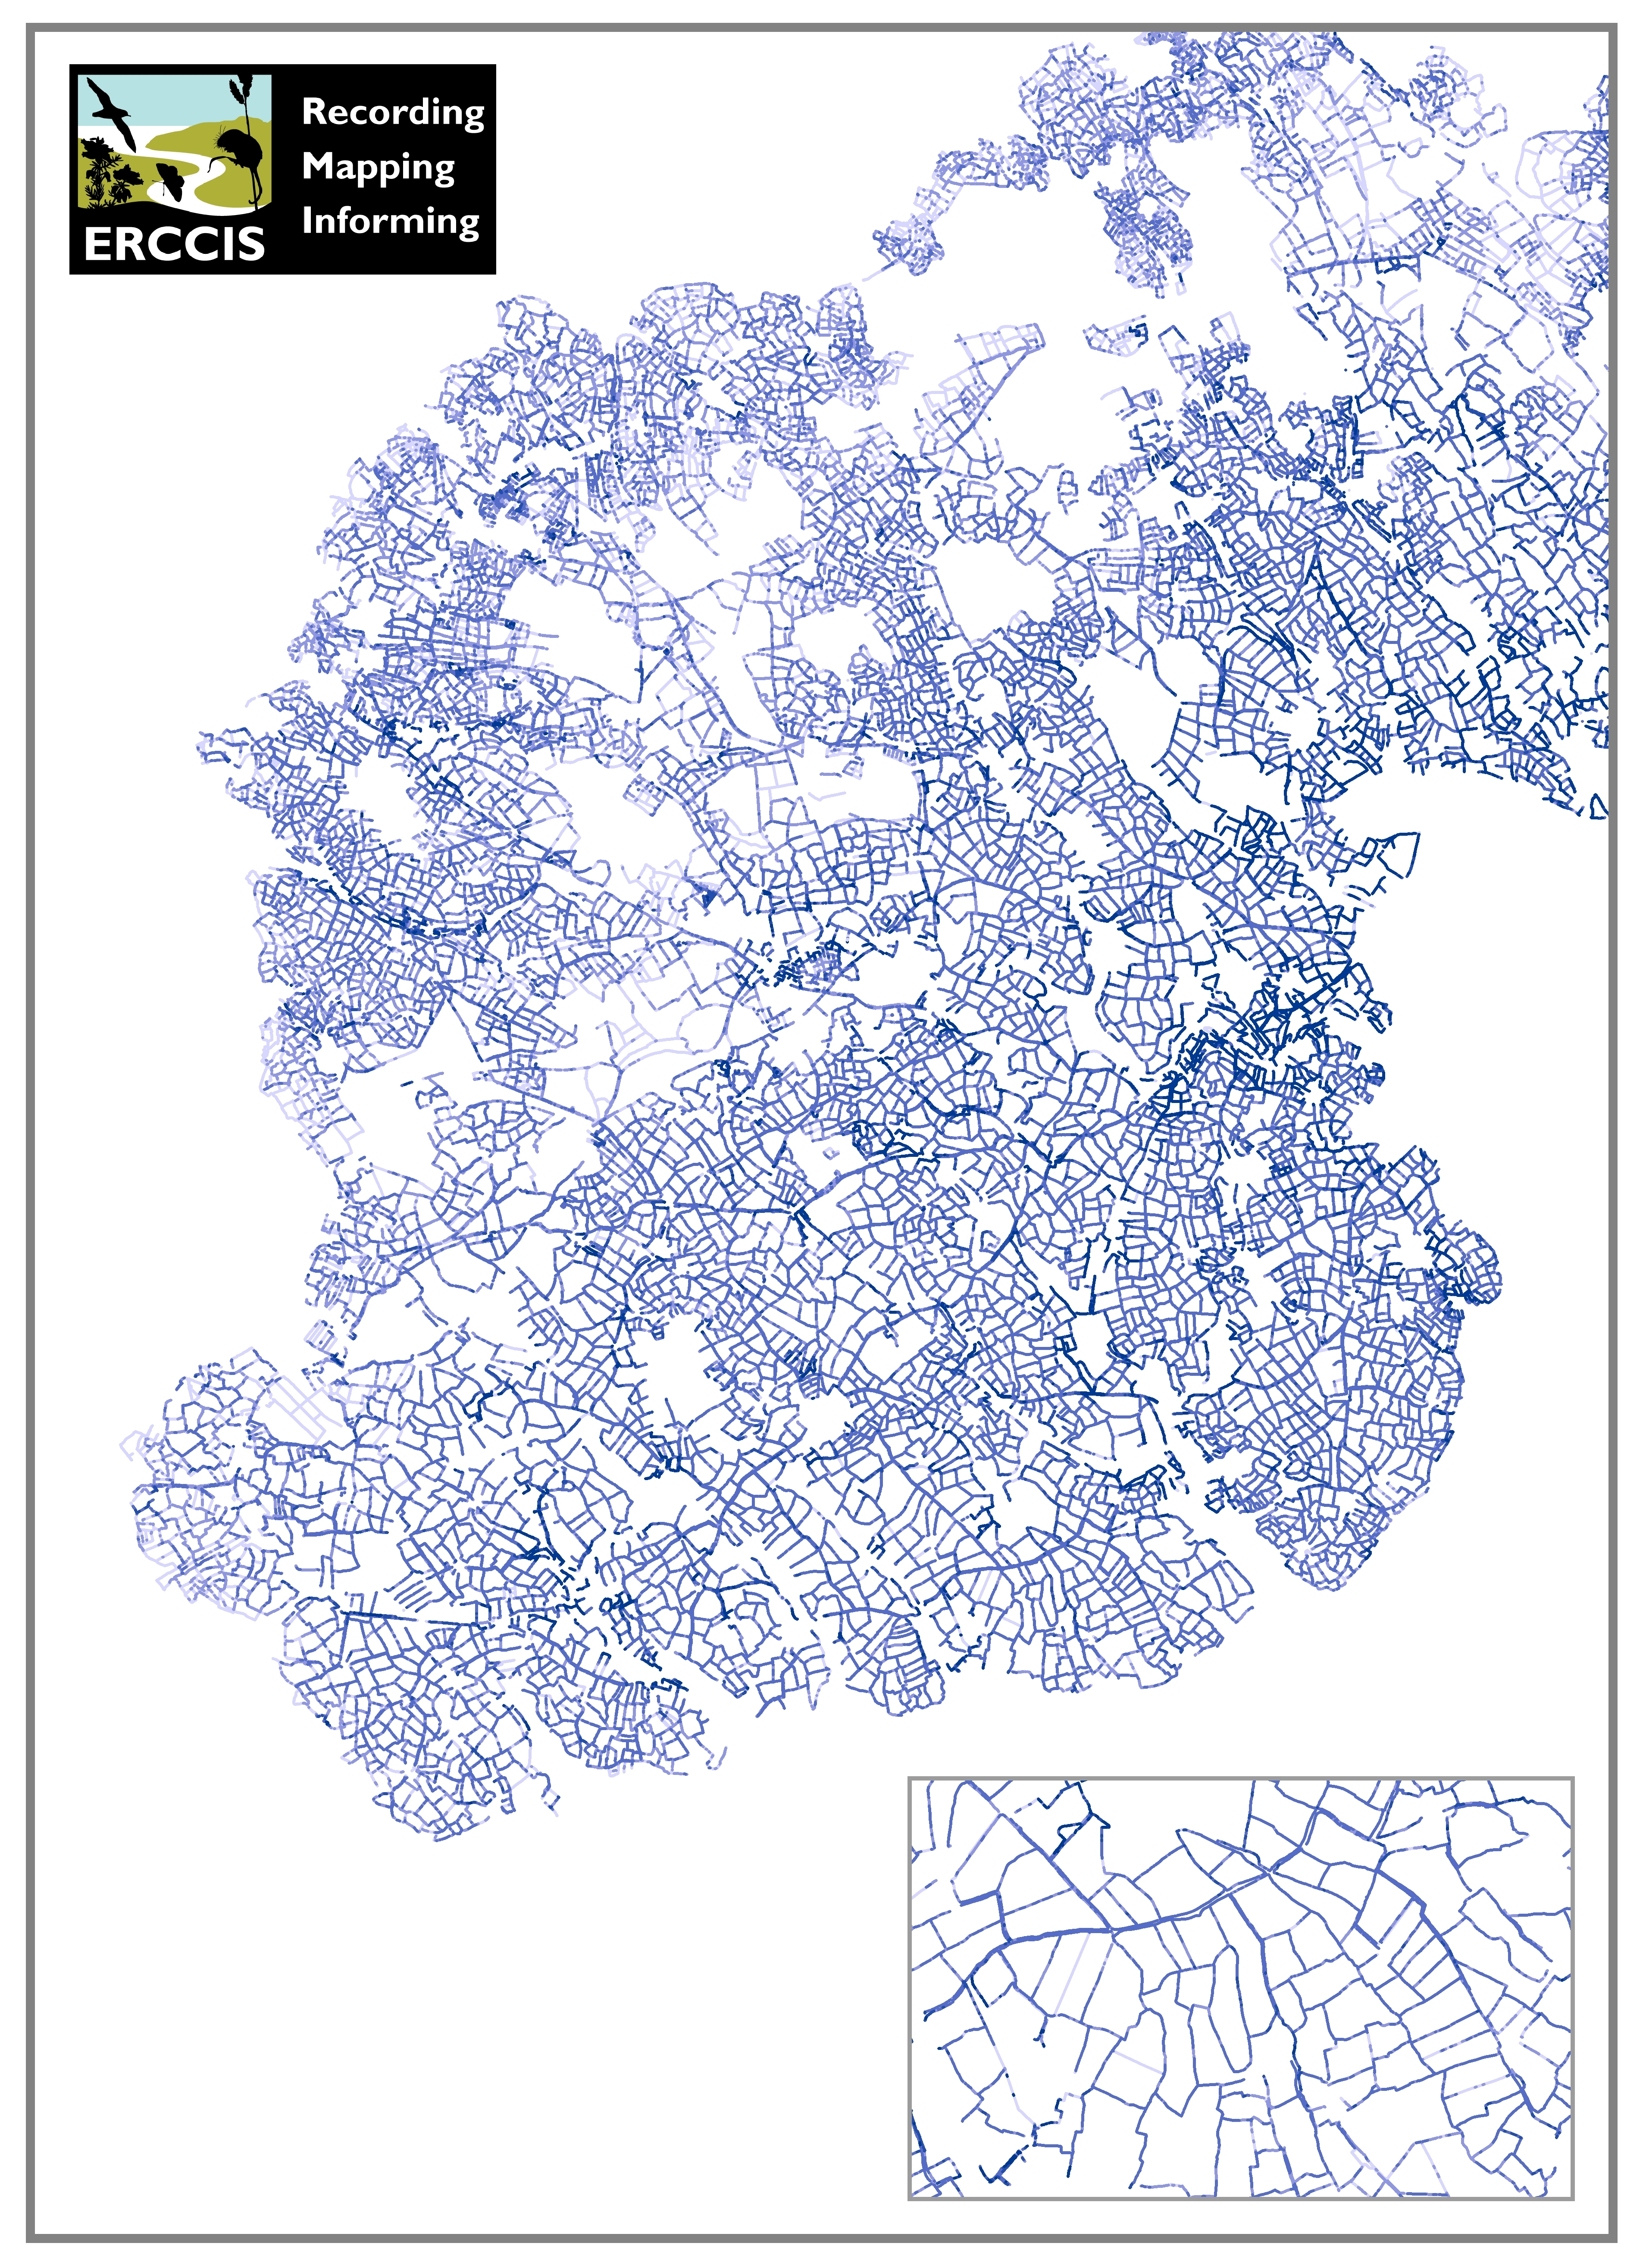 Hedges graphic from the GIS data